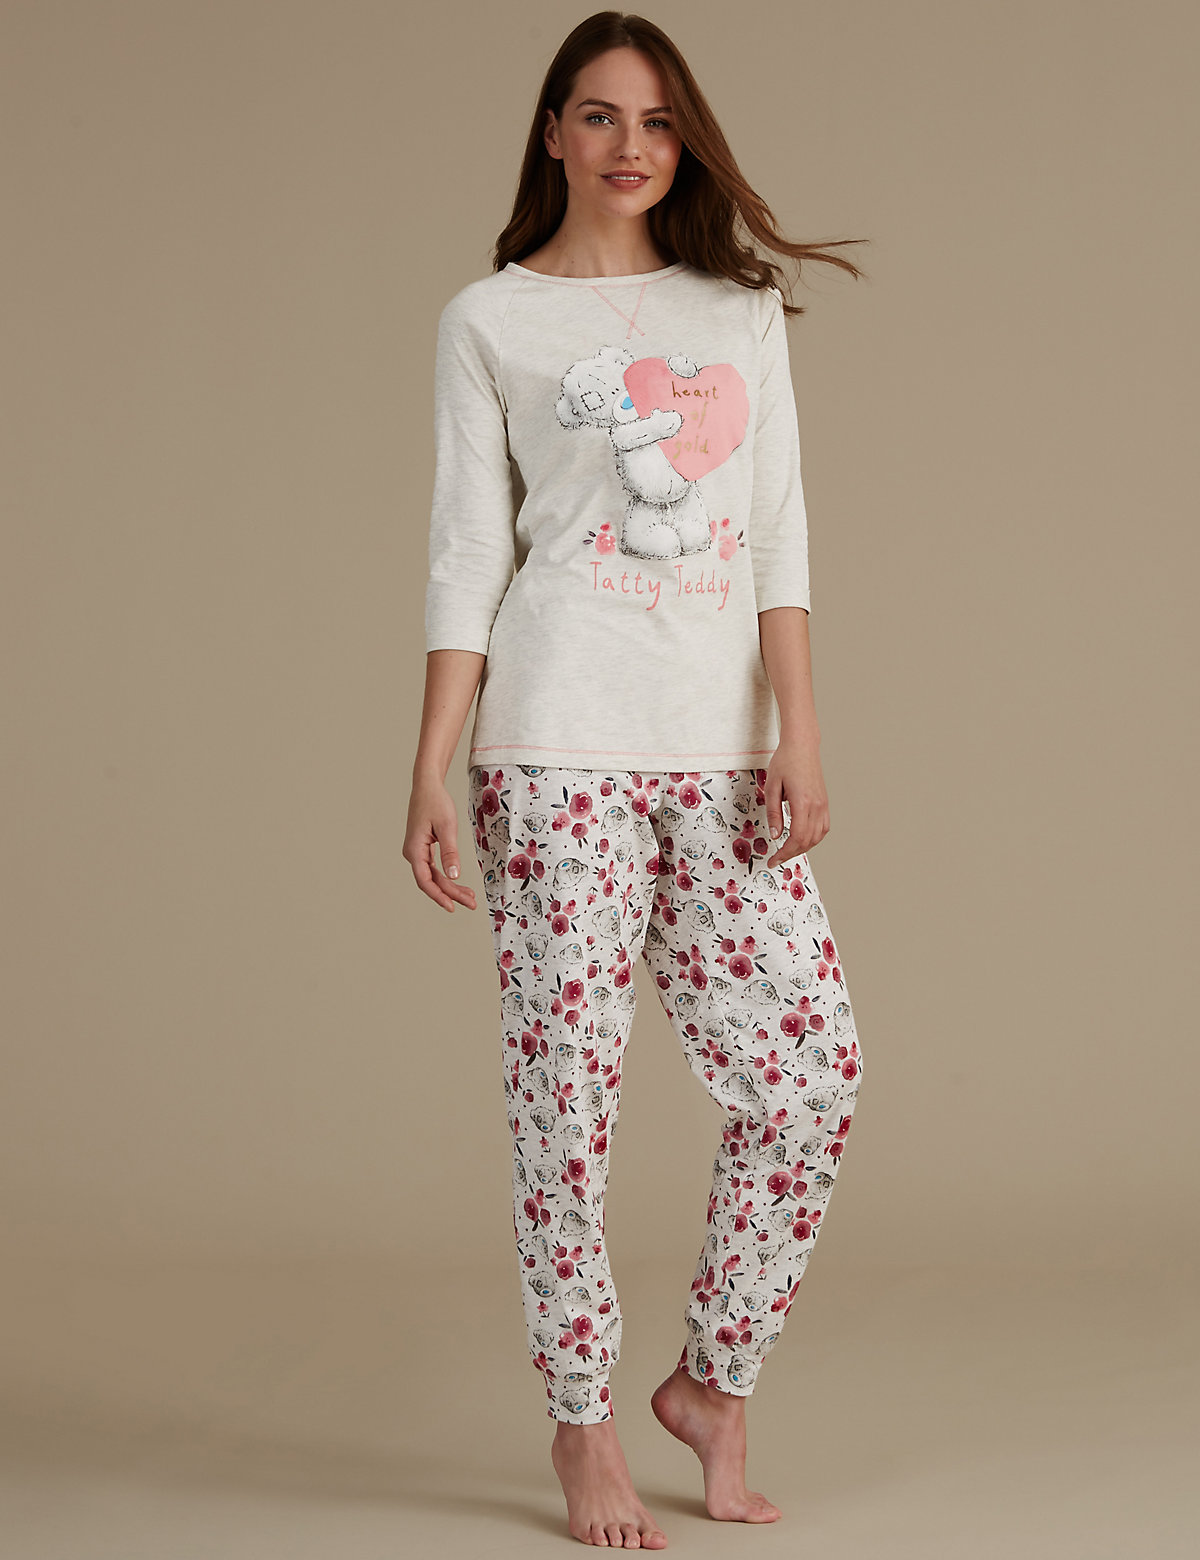 Tatty Teddy Printed ¾ Sleeve Pyjama Set